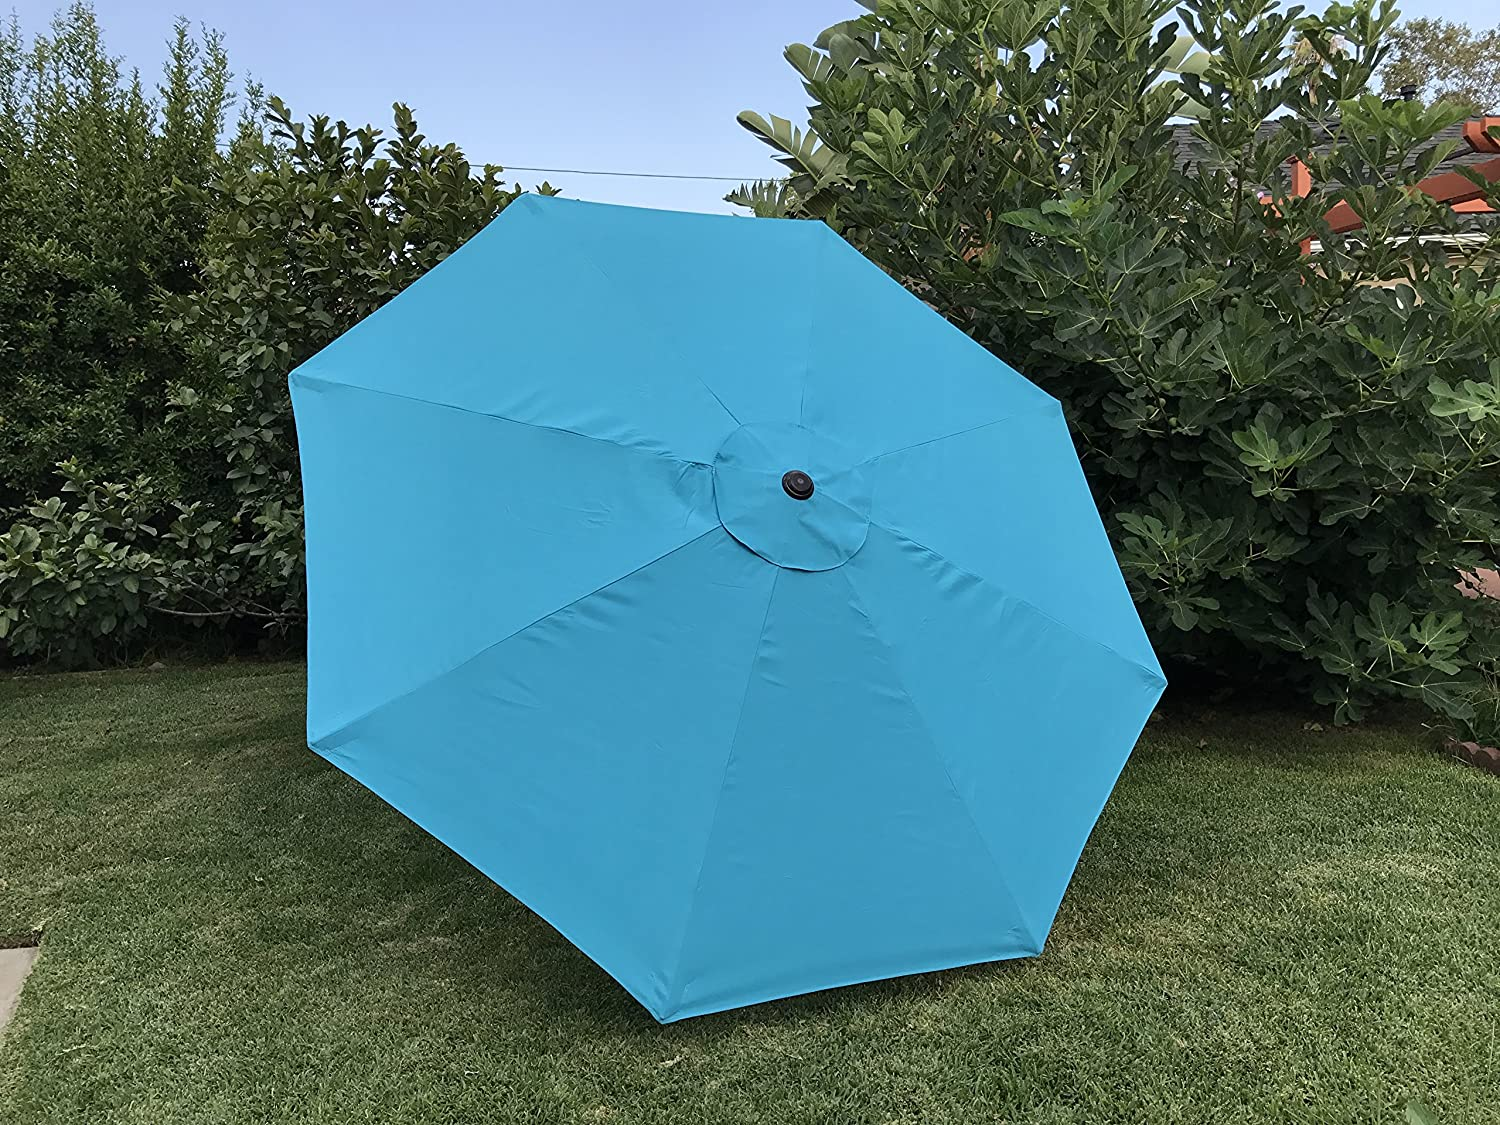 BELLRINO DECOR Replacement Turquoise/SPA Blue Strong & Thick Umbrella Canopy for 9ft 8 Ribs (Canopy Only)